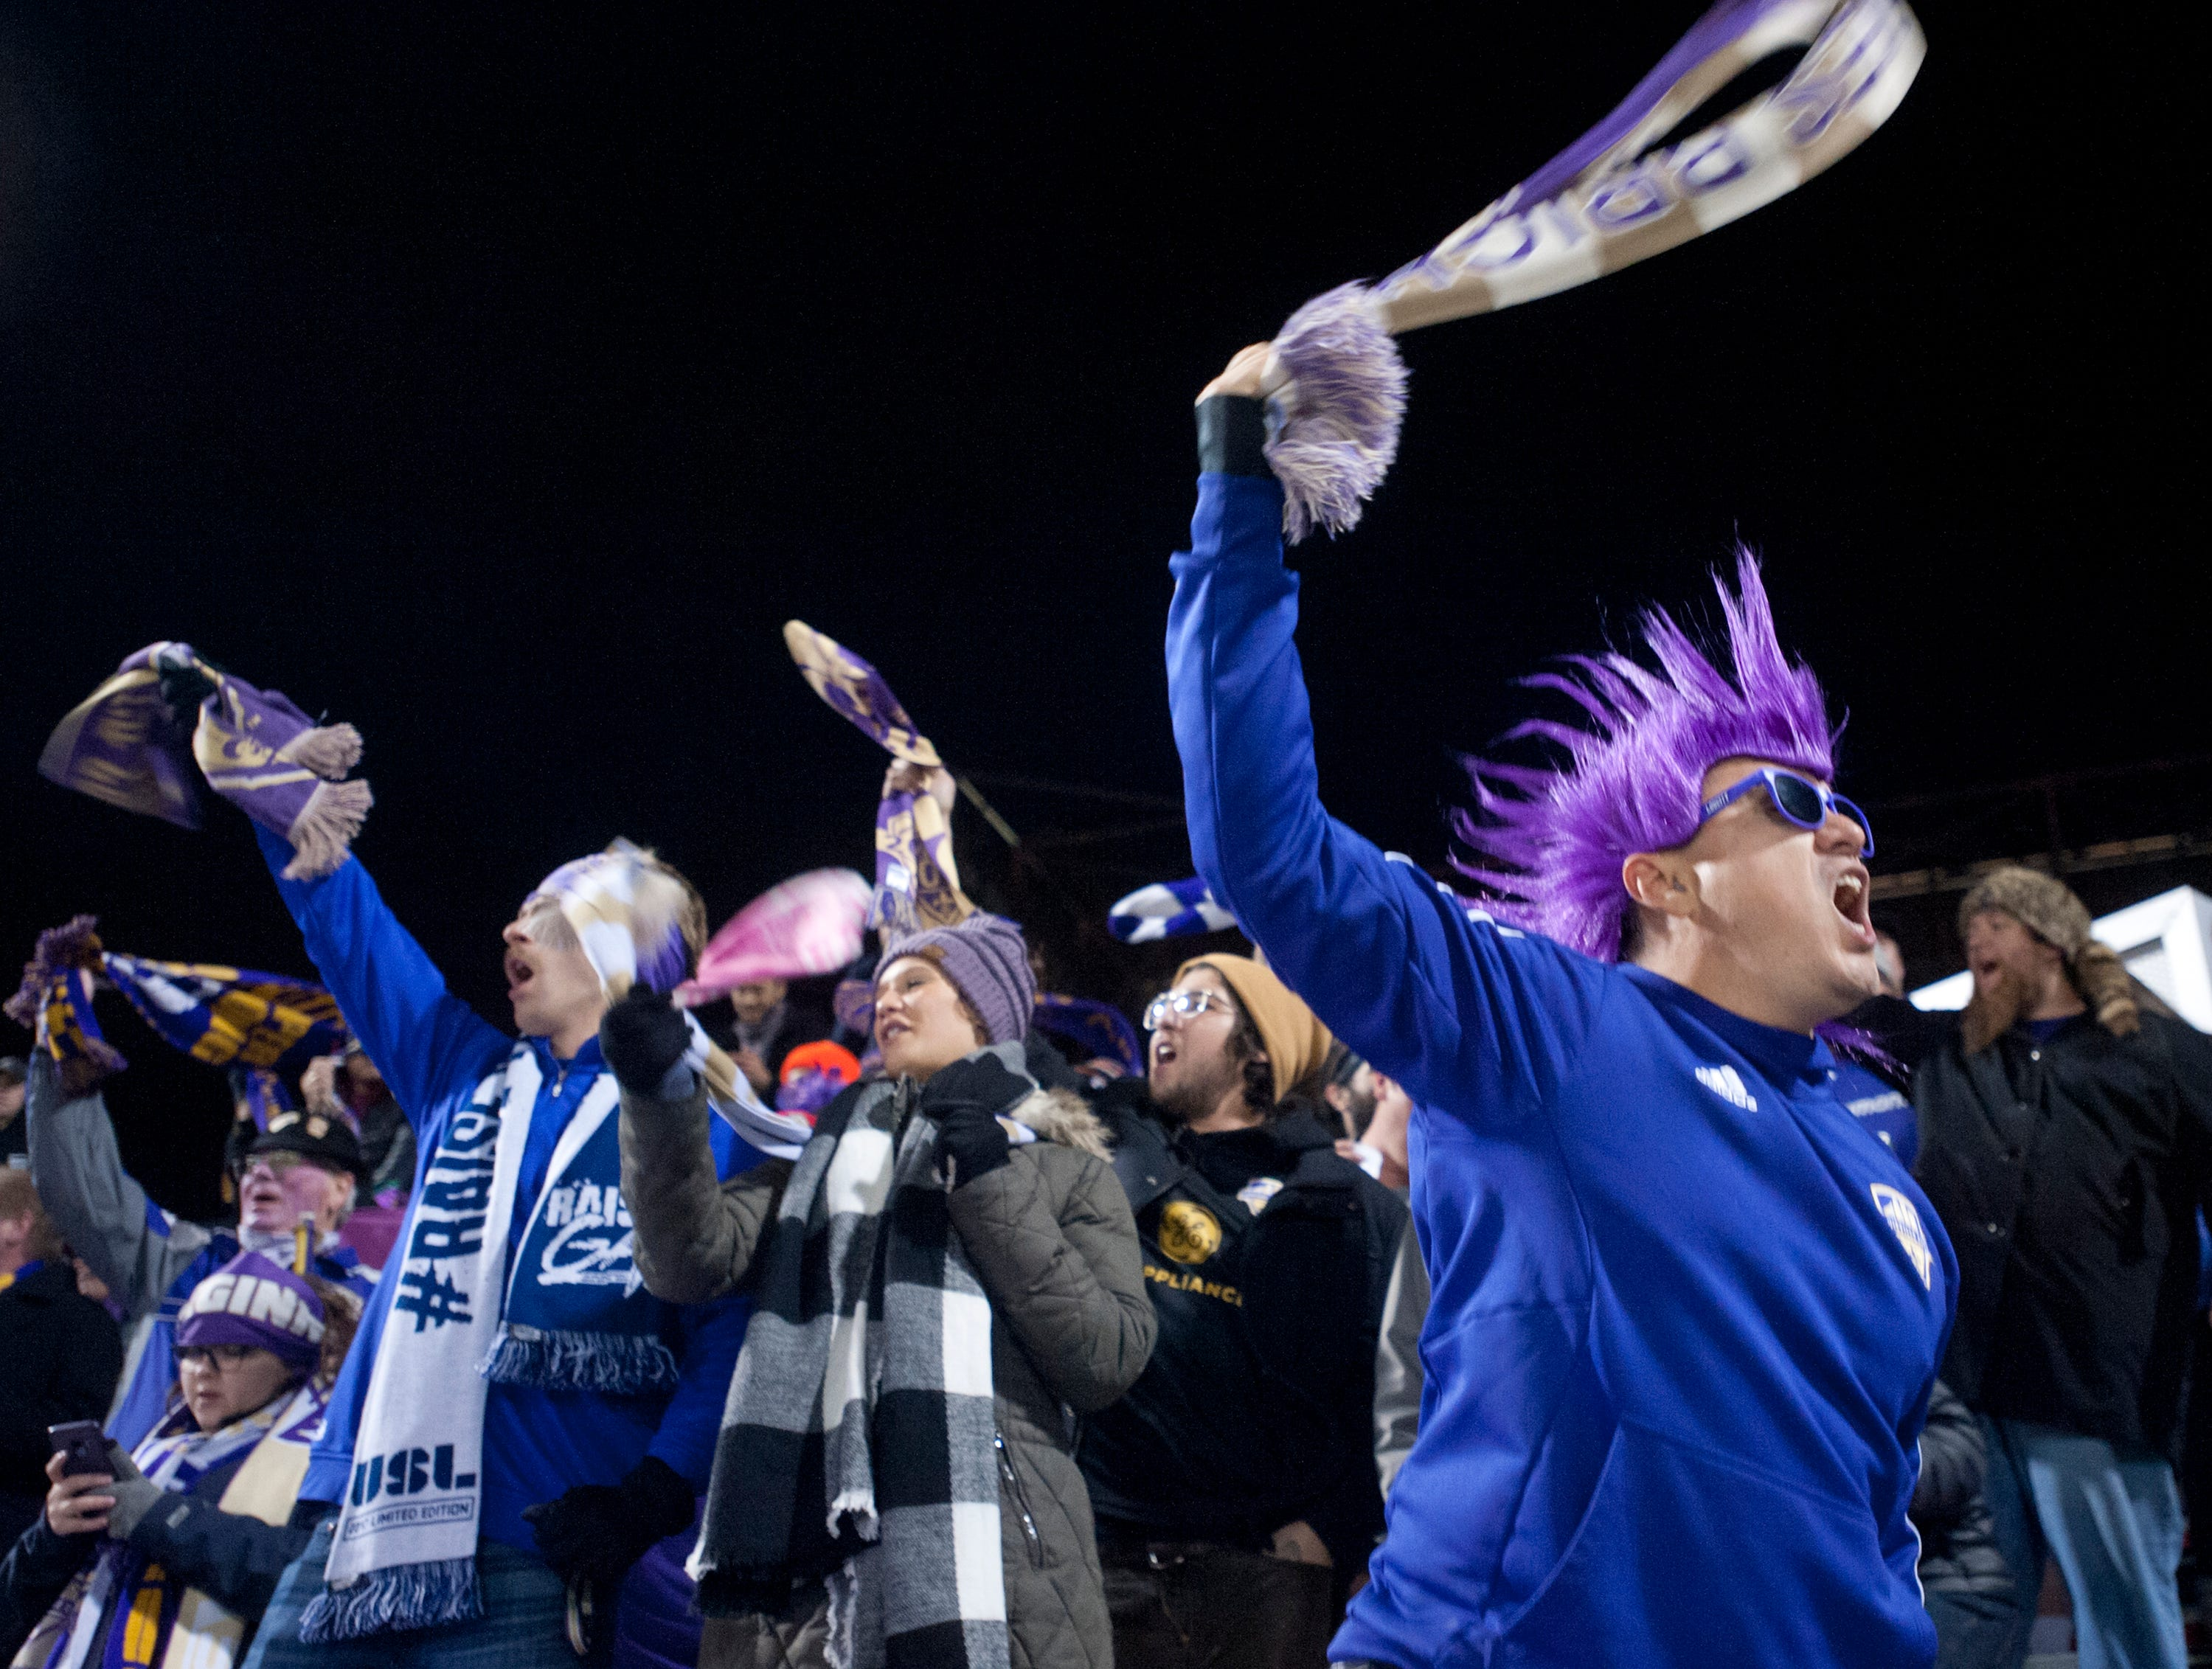 Jorge Pazmino of Bullitt Co., Ky., twirls a towel around his head as he roots for the home team as Louisville City FC takes on the Phoenix Rising FC for the 2018 USL Cup.November 08, 2018